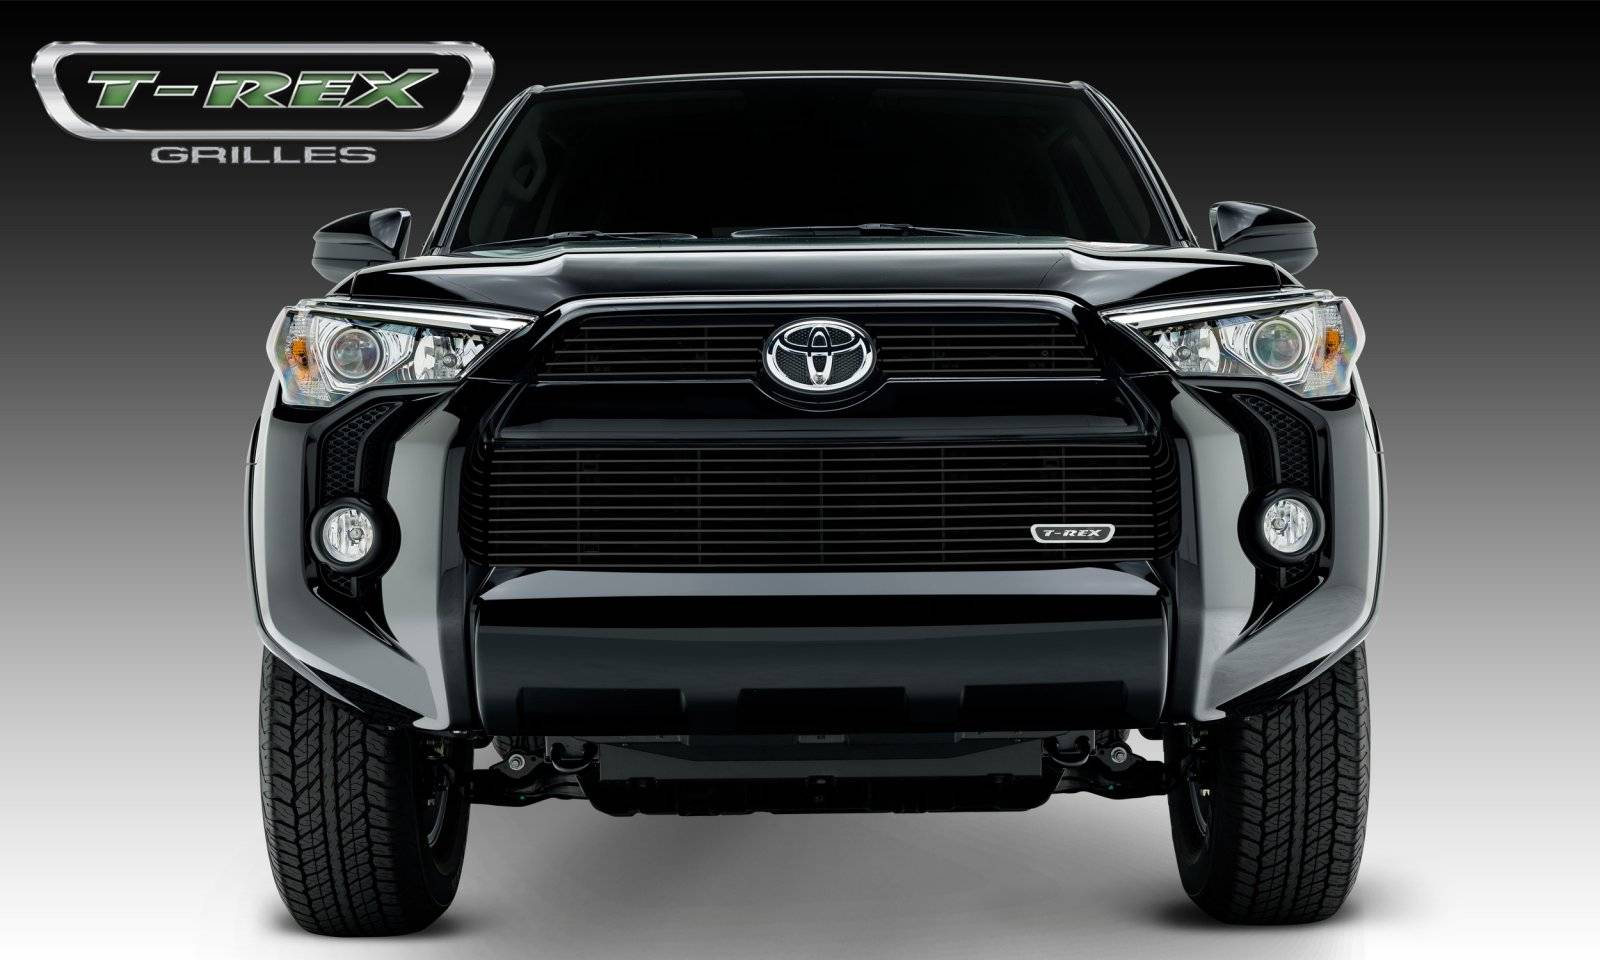 T-REX Grilles - Toyota 4 Runner Billet Grille, Main & Bumper, Overlay, 3 Pc's, Black Powdercoated Aluminum Bars, Fits Trail & SR5 but not Limited - Pt # 21949B